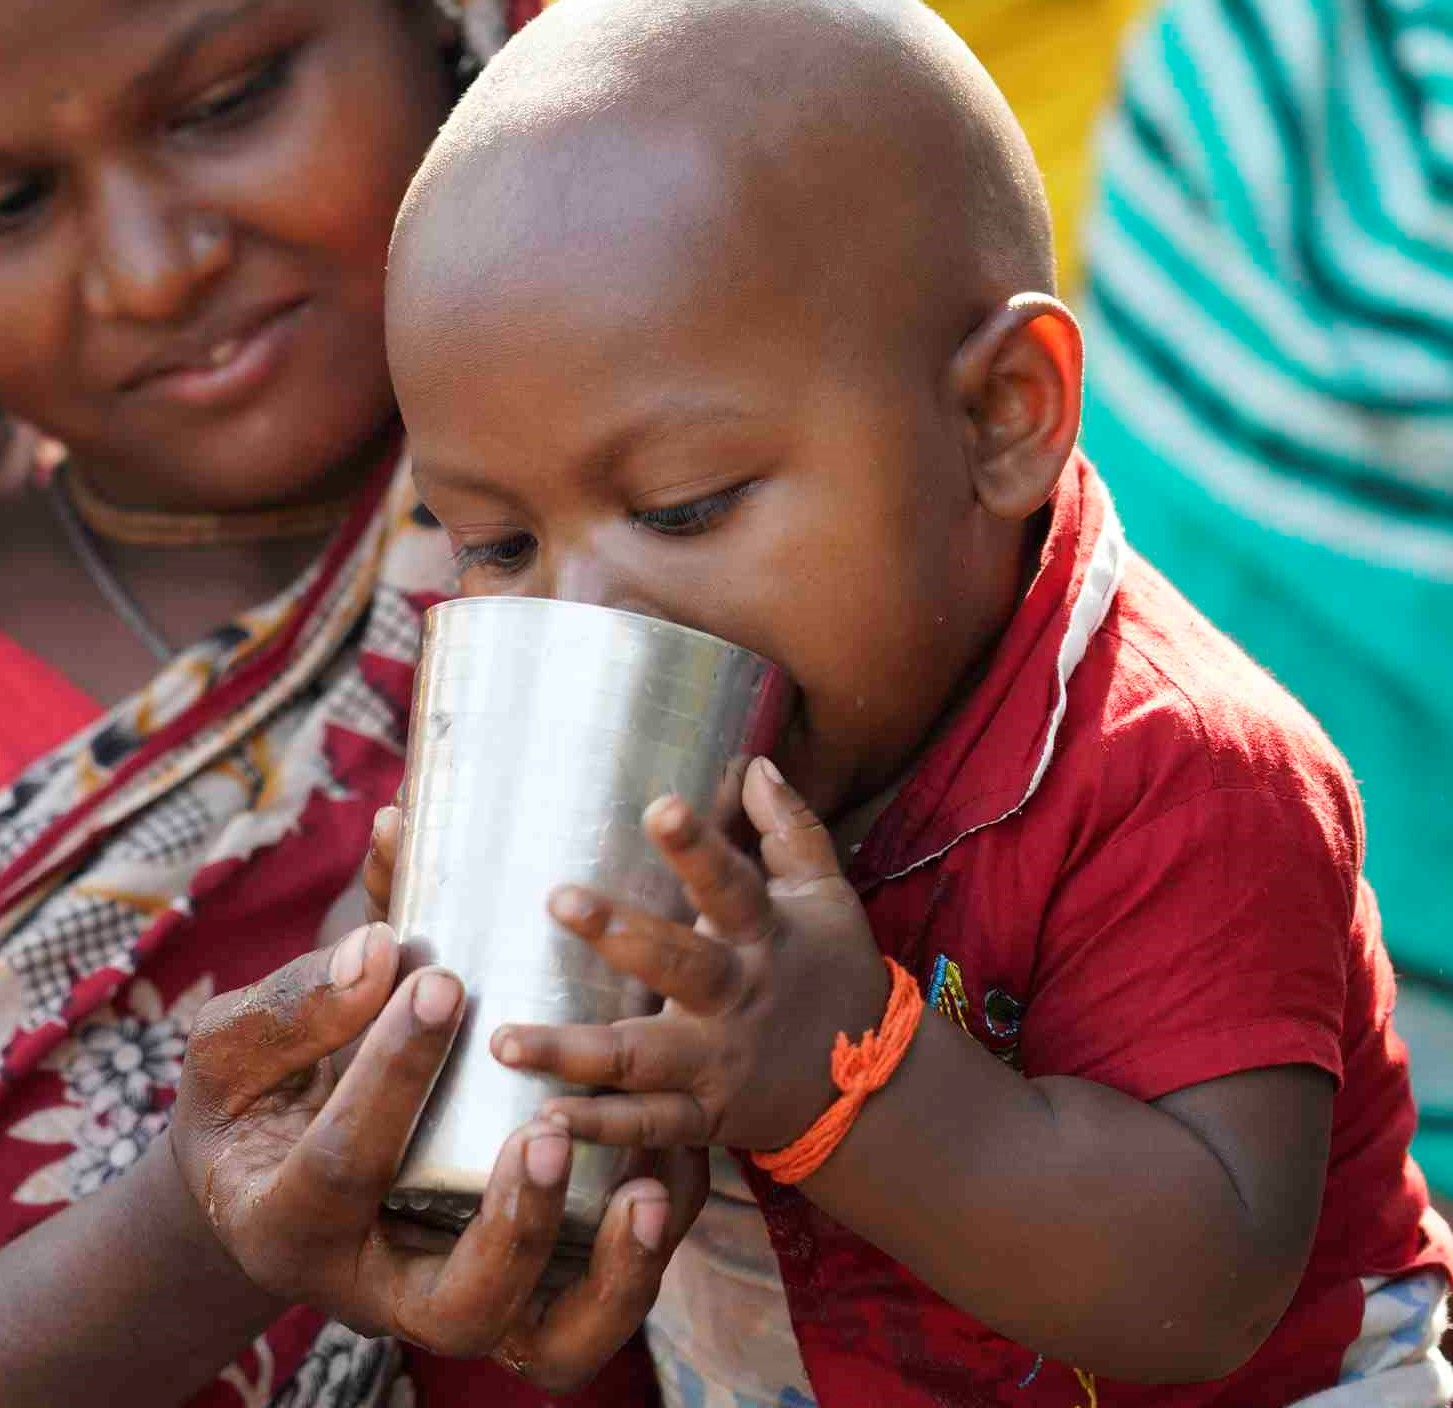 Child in Bangladesh drinking cup of water